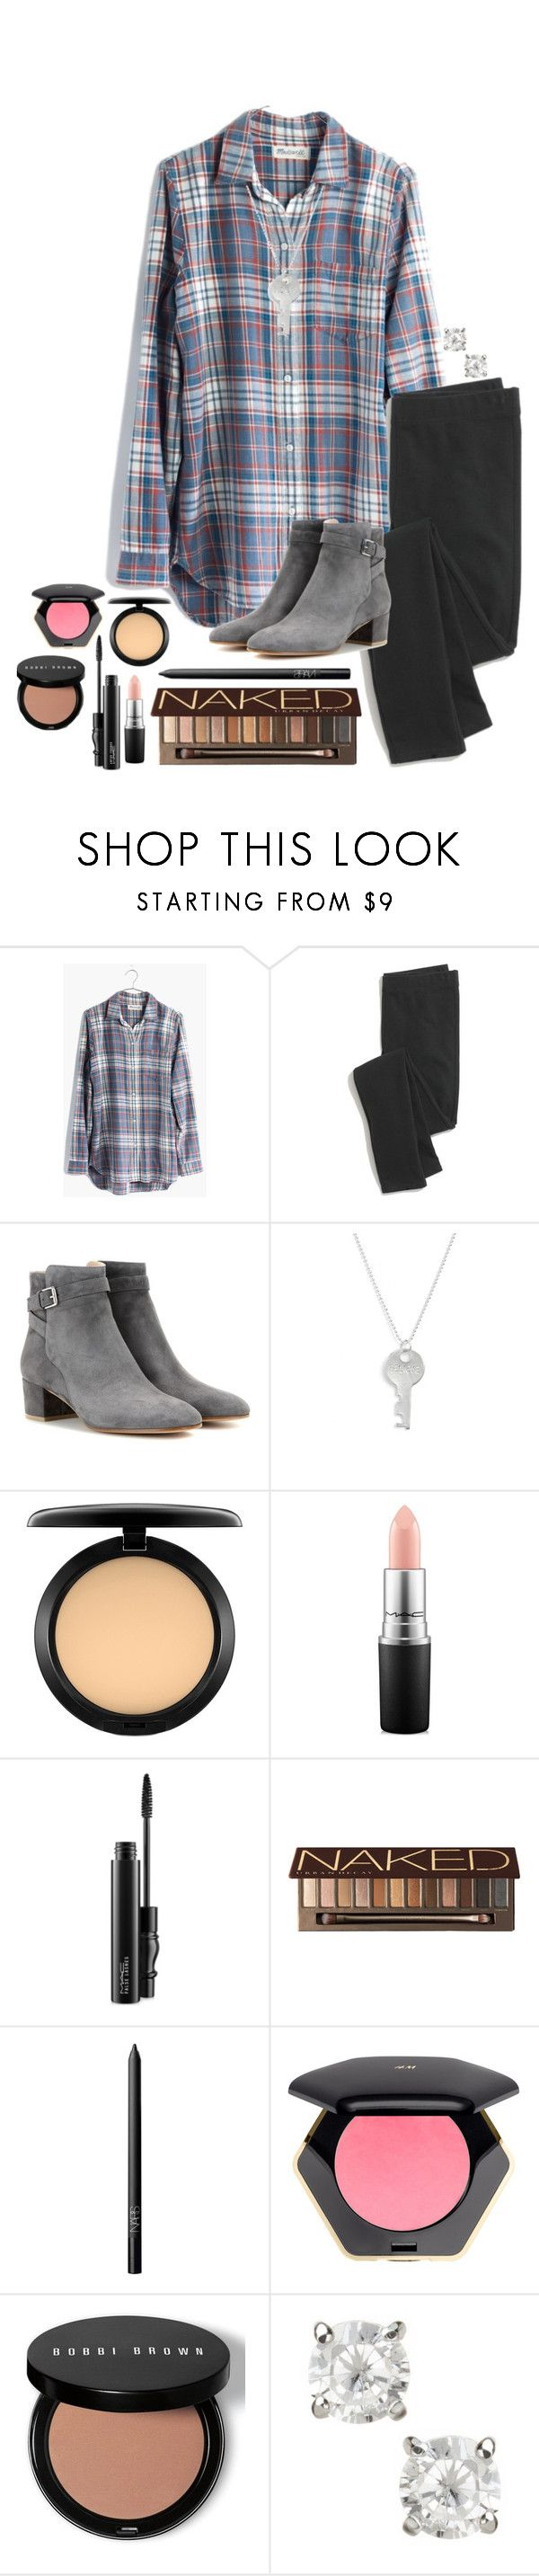 """Already tired"" by ashley-watson19 ❤ liked on Polyvore featuring Madewell, Gianvito Rossi, The Giving Keys, MAC Cosmetics, Urban Decay, NARS Cosmetics, H&M, Bobbi Brown Cosmetics and Carolee"